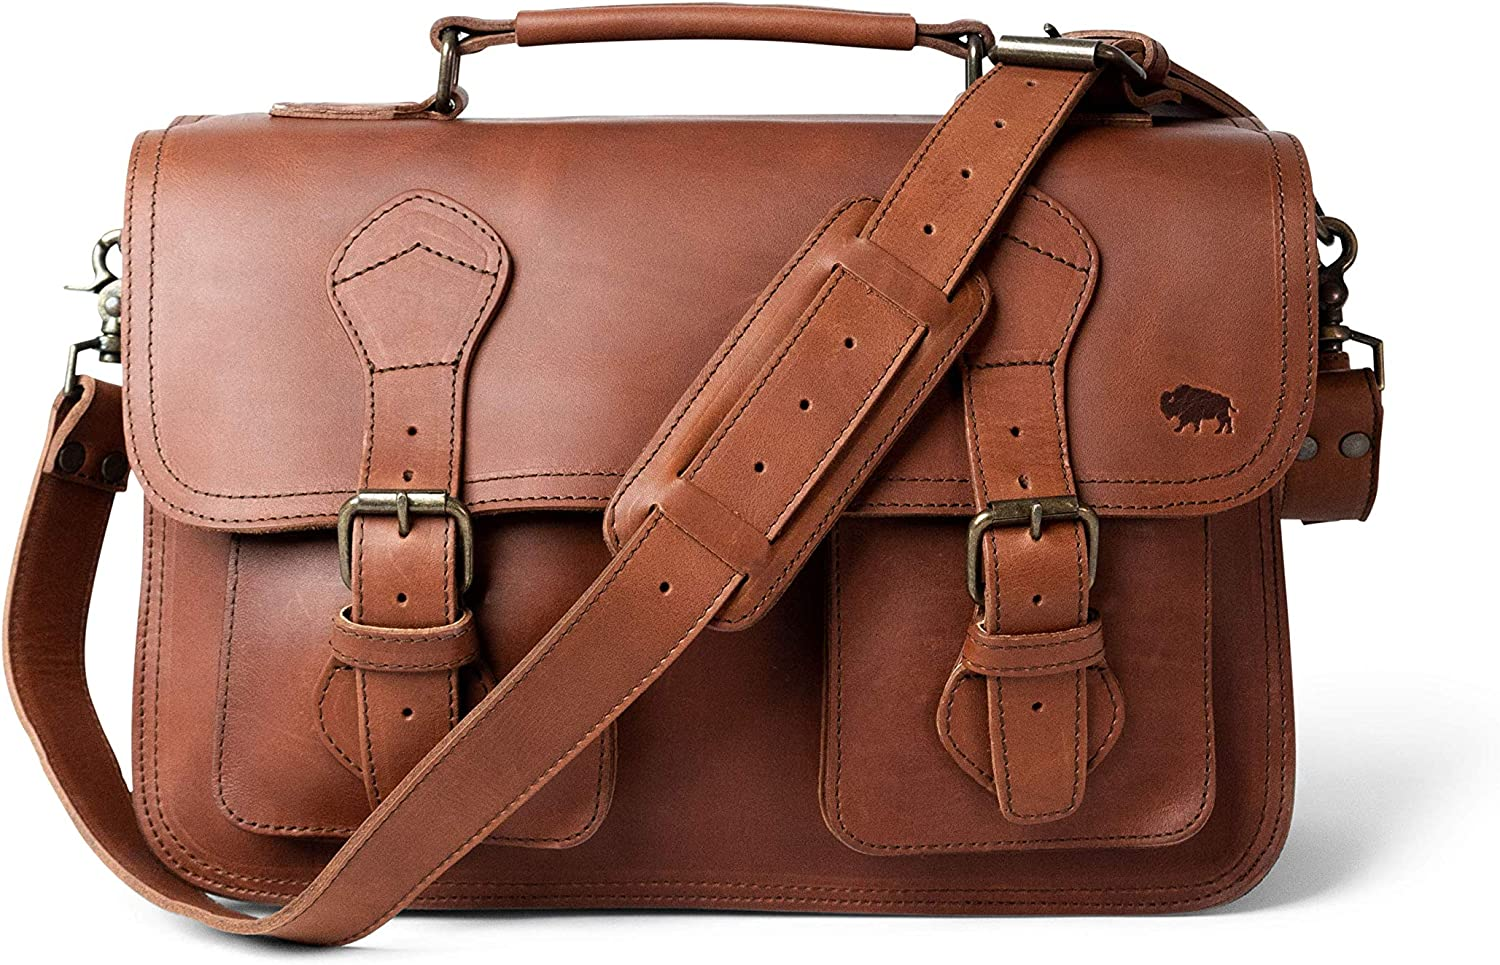 Full Grain Cow Leather Briefcase for Men Denver by Buffalo Jackson Messenger Bag Fits 13 14 15 Laptops Made in North America Autumn Brown